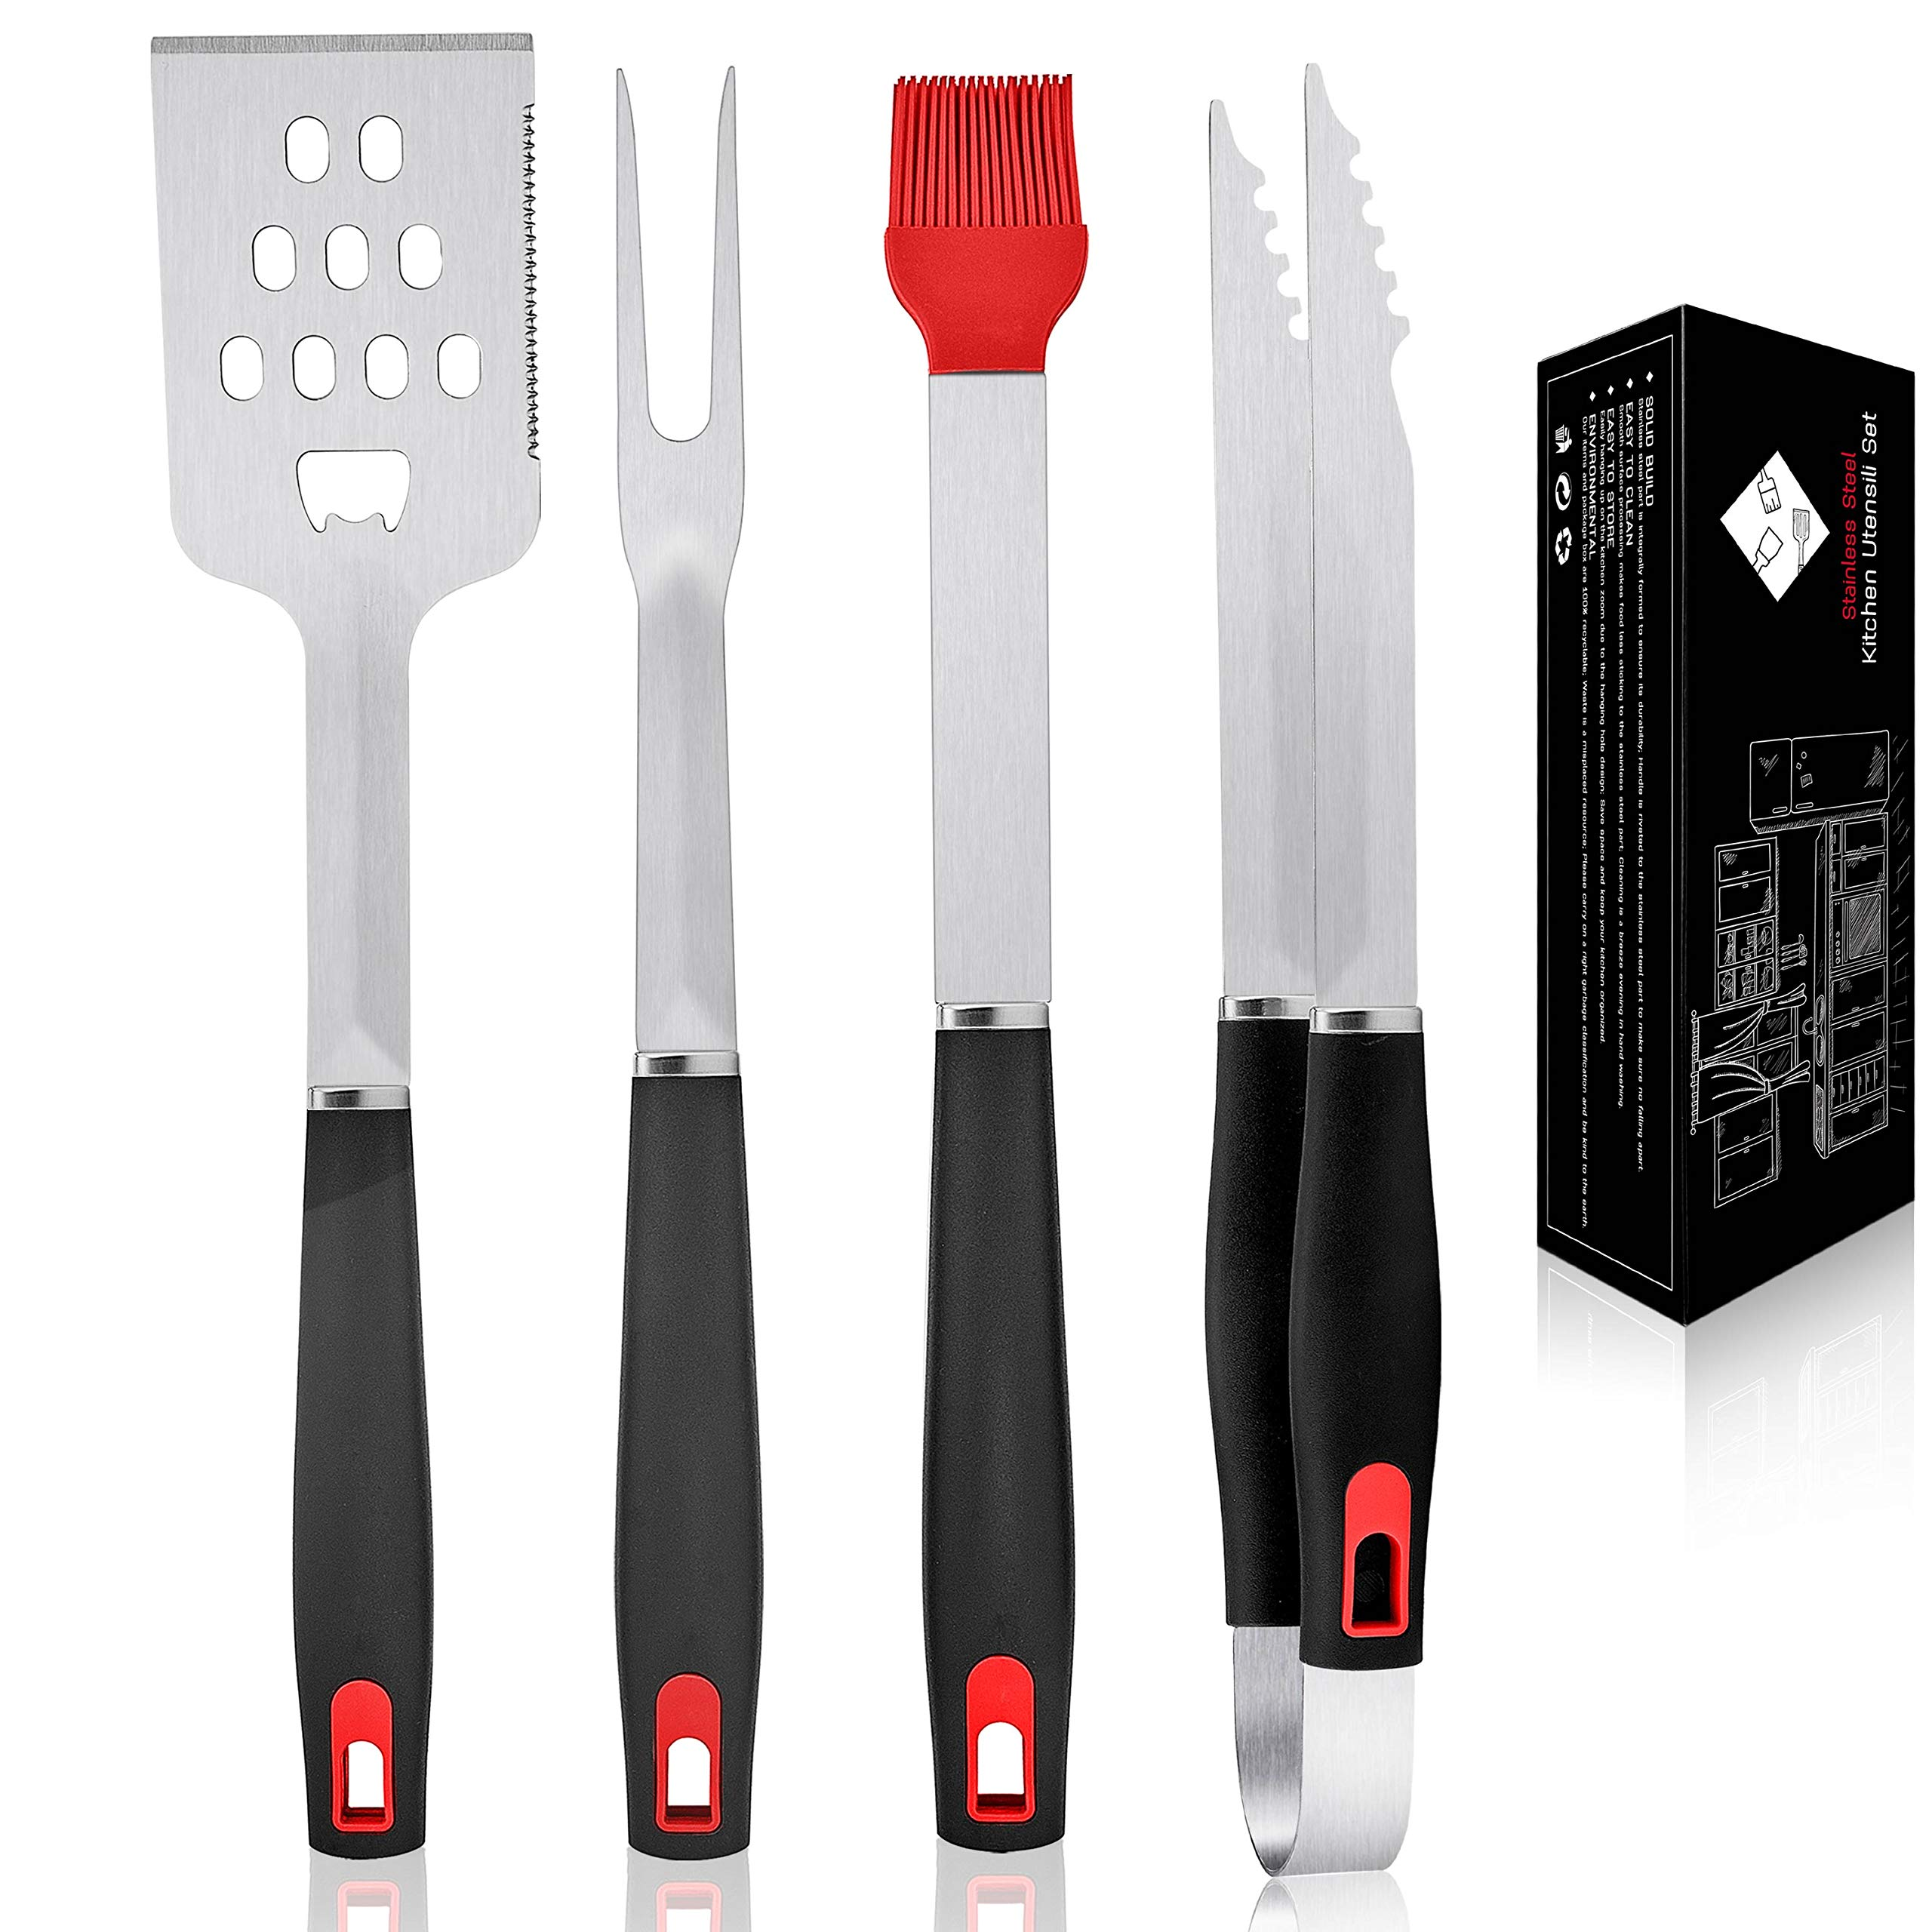 Leonyo Commercial Grade Heavy Duty Grilling BBQ Accessories Set of 4, Professional Stainless Steel BBQ Grill Tool Set for Outdoor Cooking Camping Grilling Smoking, Man Gift, Dishwasher Safe